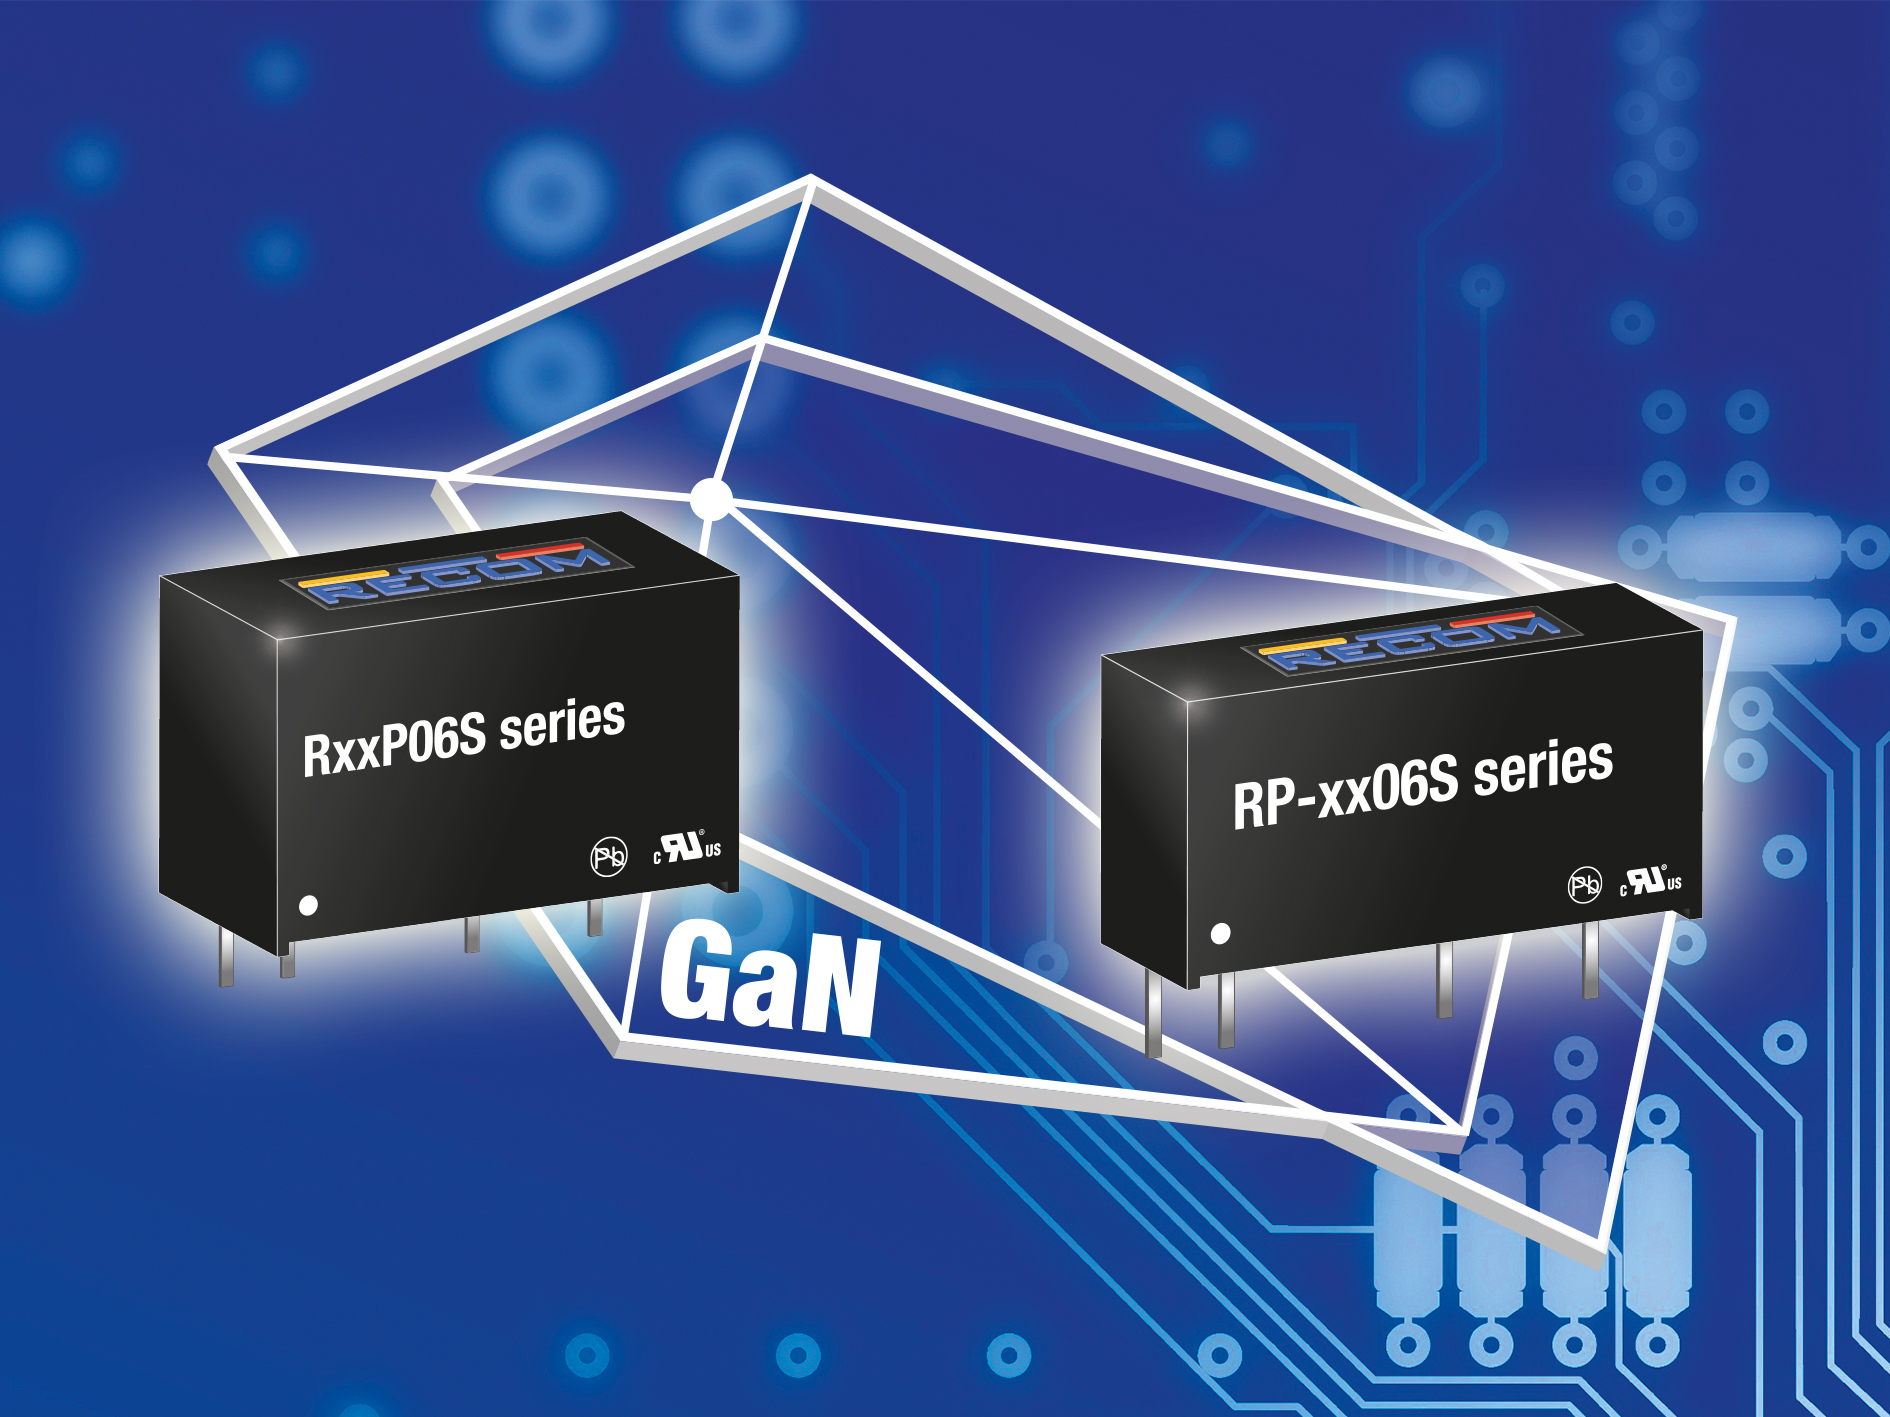 DC/DC supplies designed for fast-switching GaN drivers